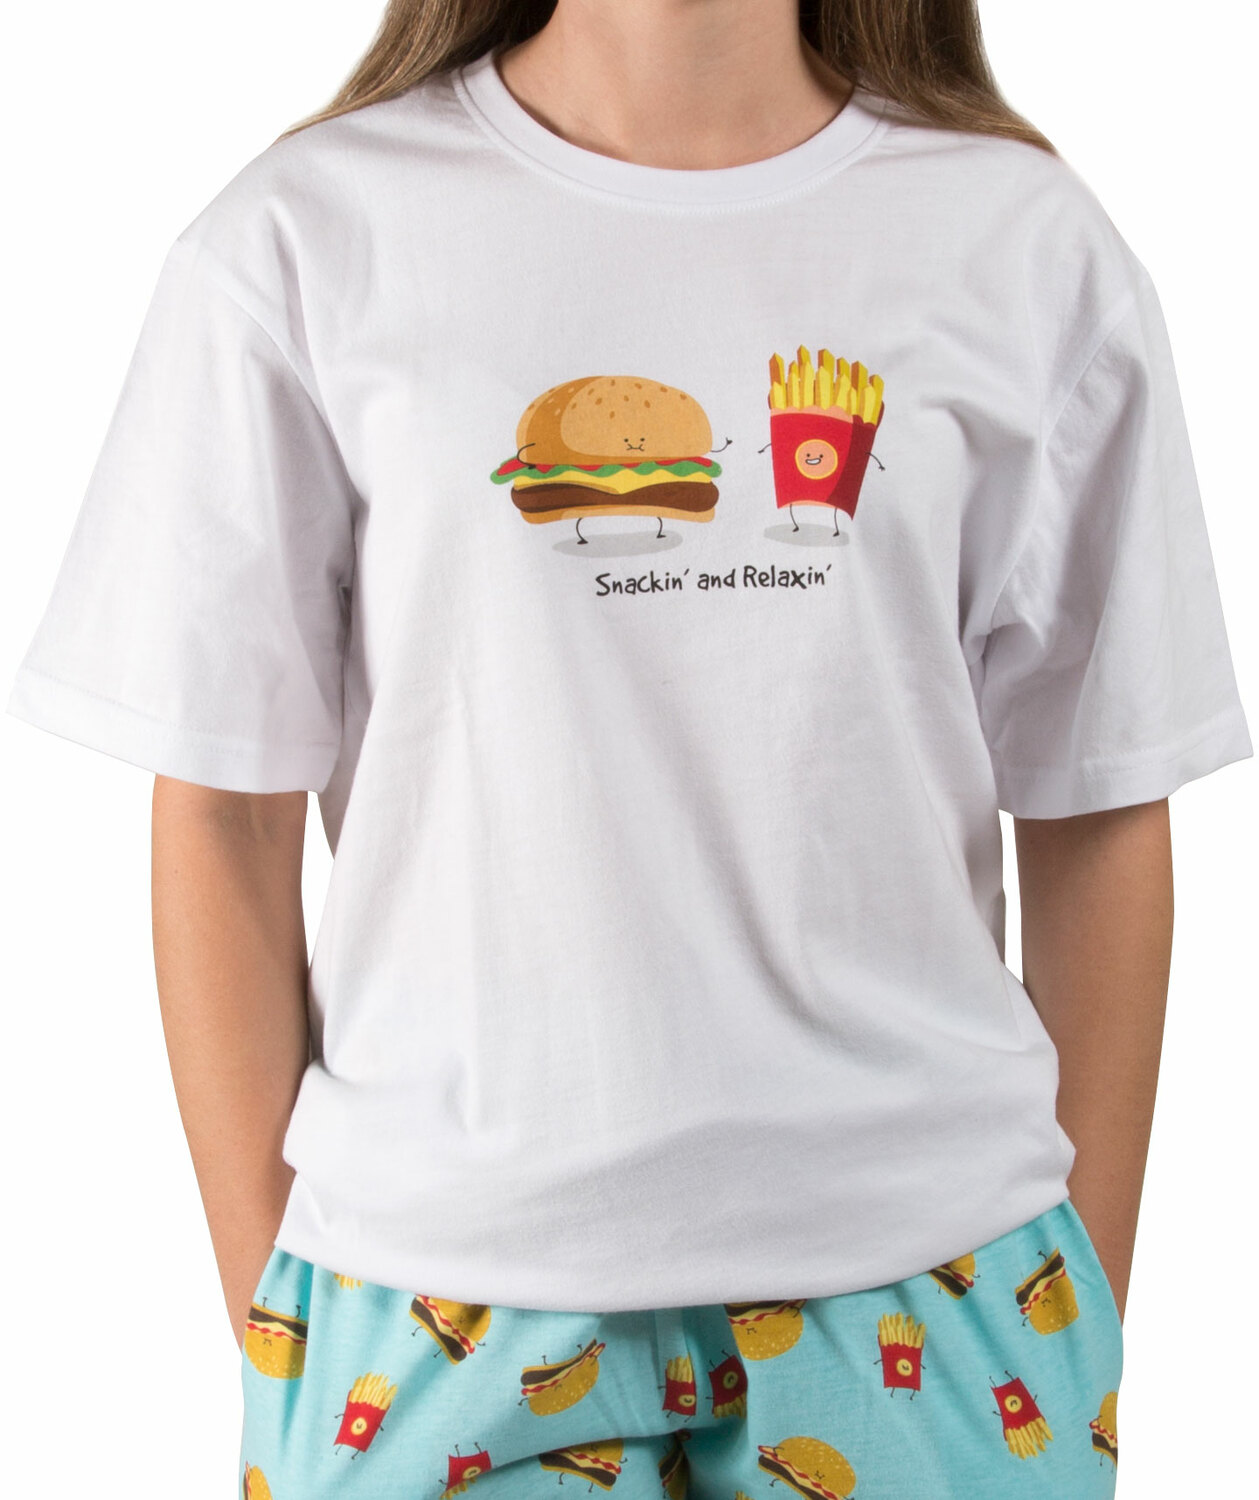 Cheeseburger and Fries by Late Night Snacks - Cheeseburger and Fries - S Unisex T-Shirt